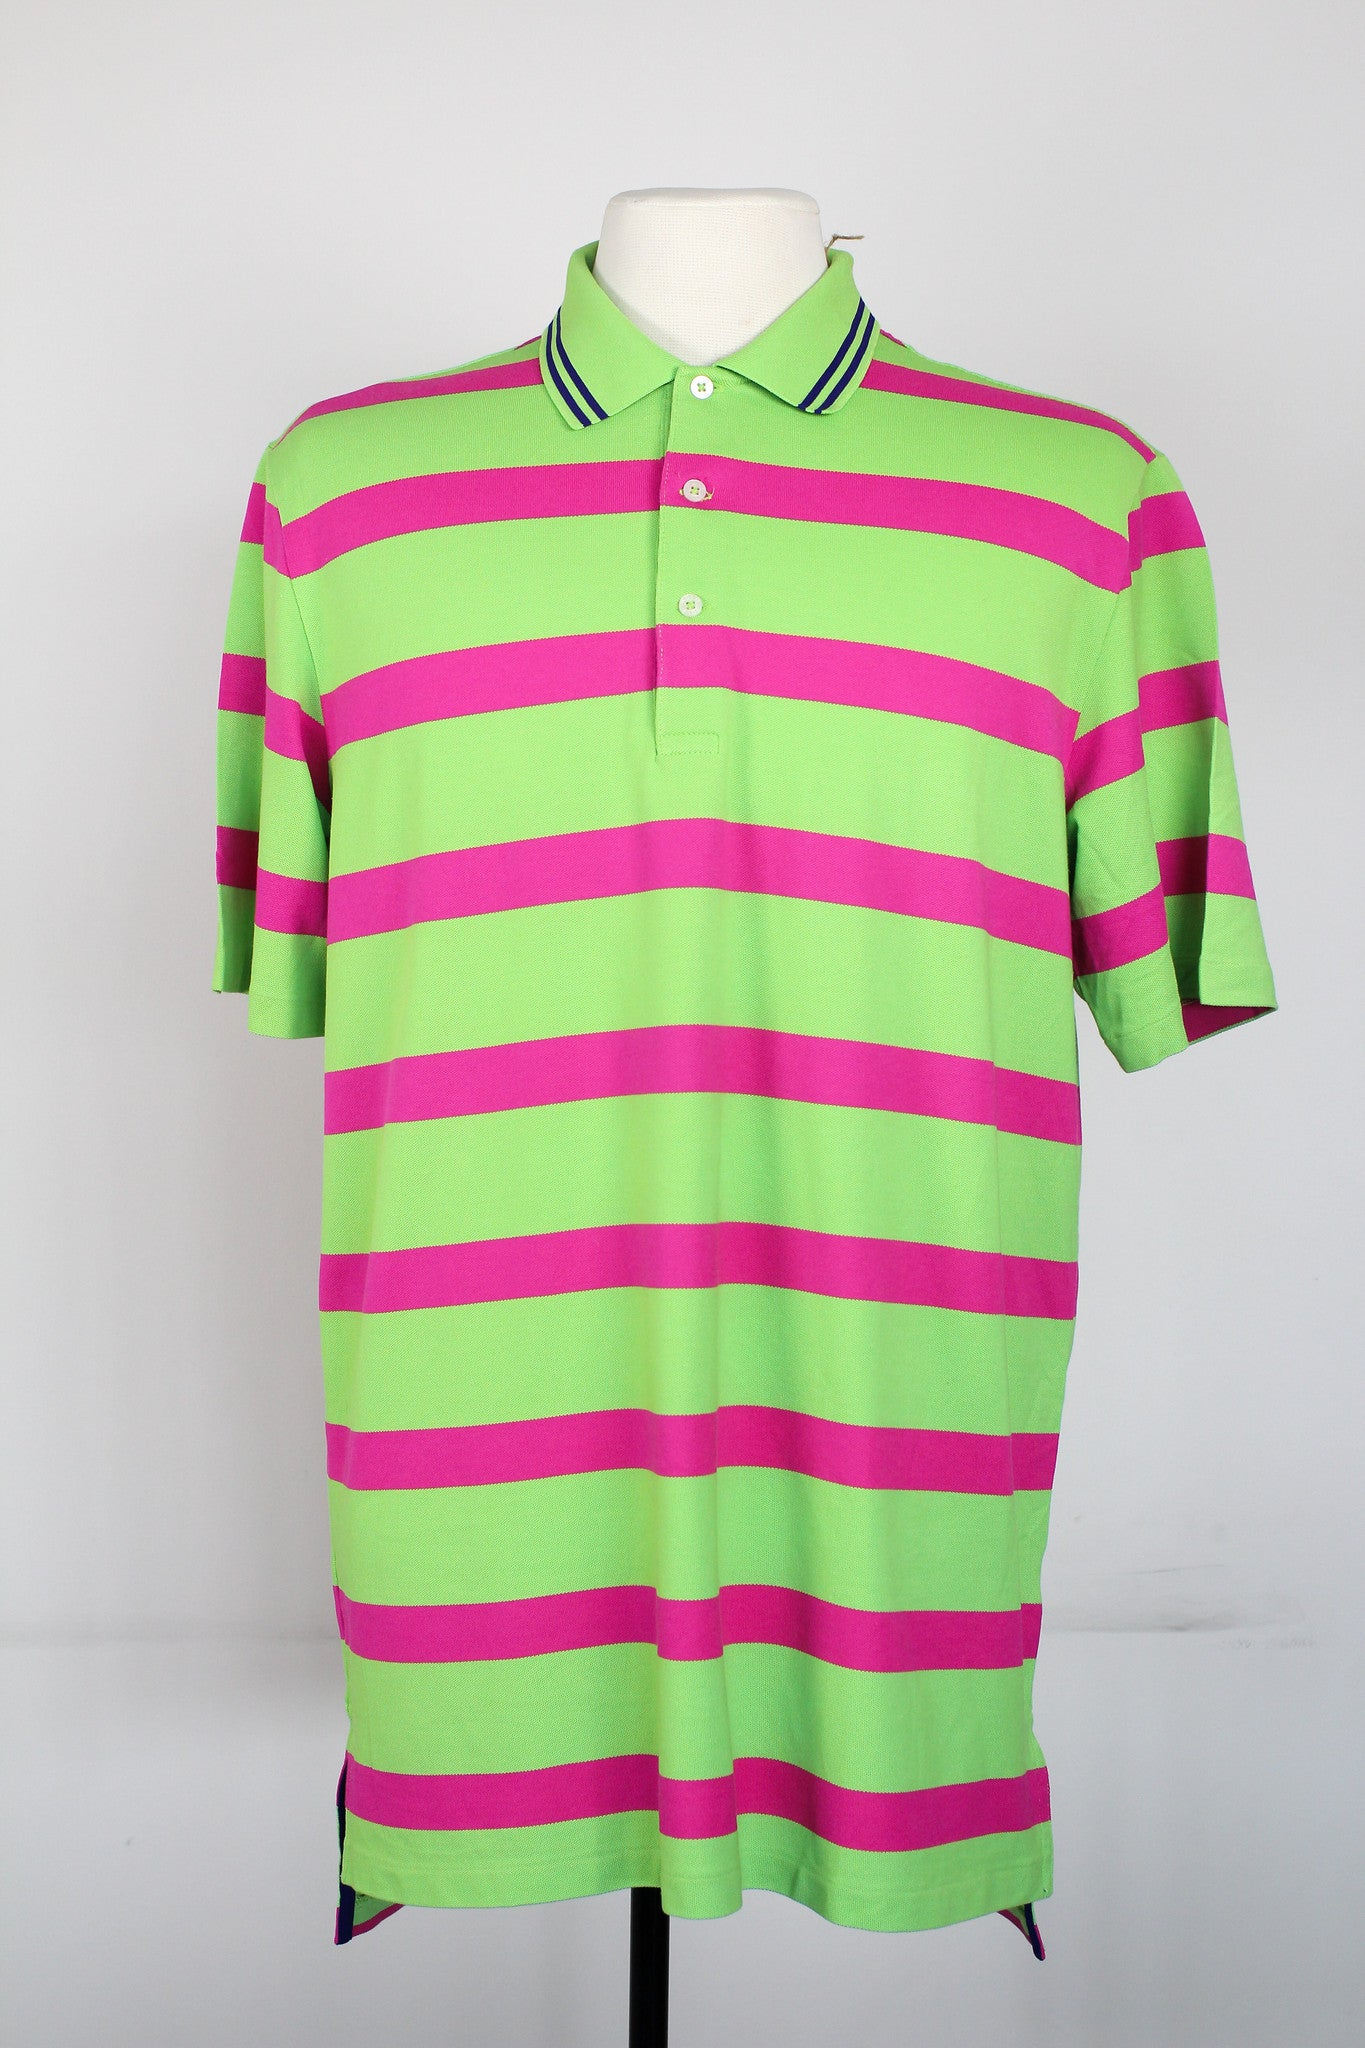 Abercrombie & Fitch Striped Polo